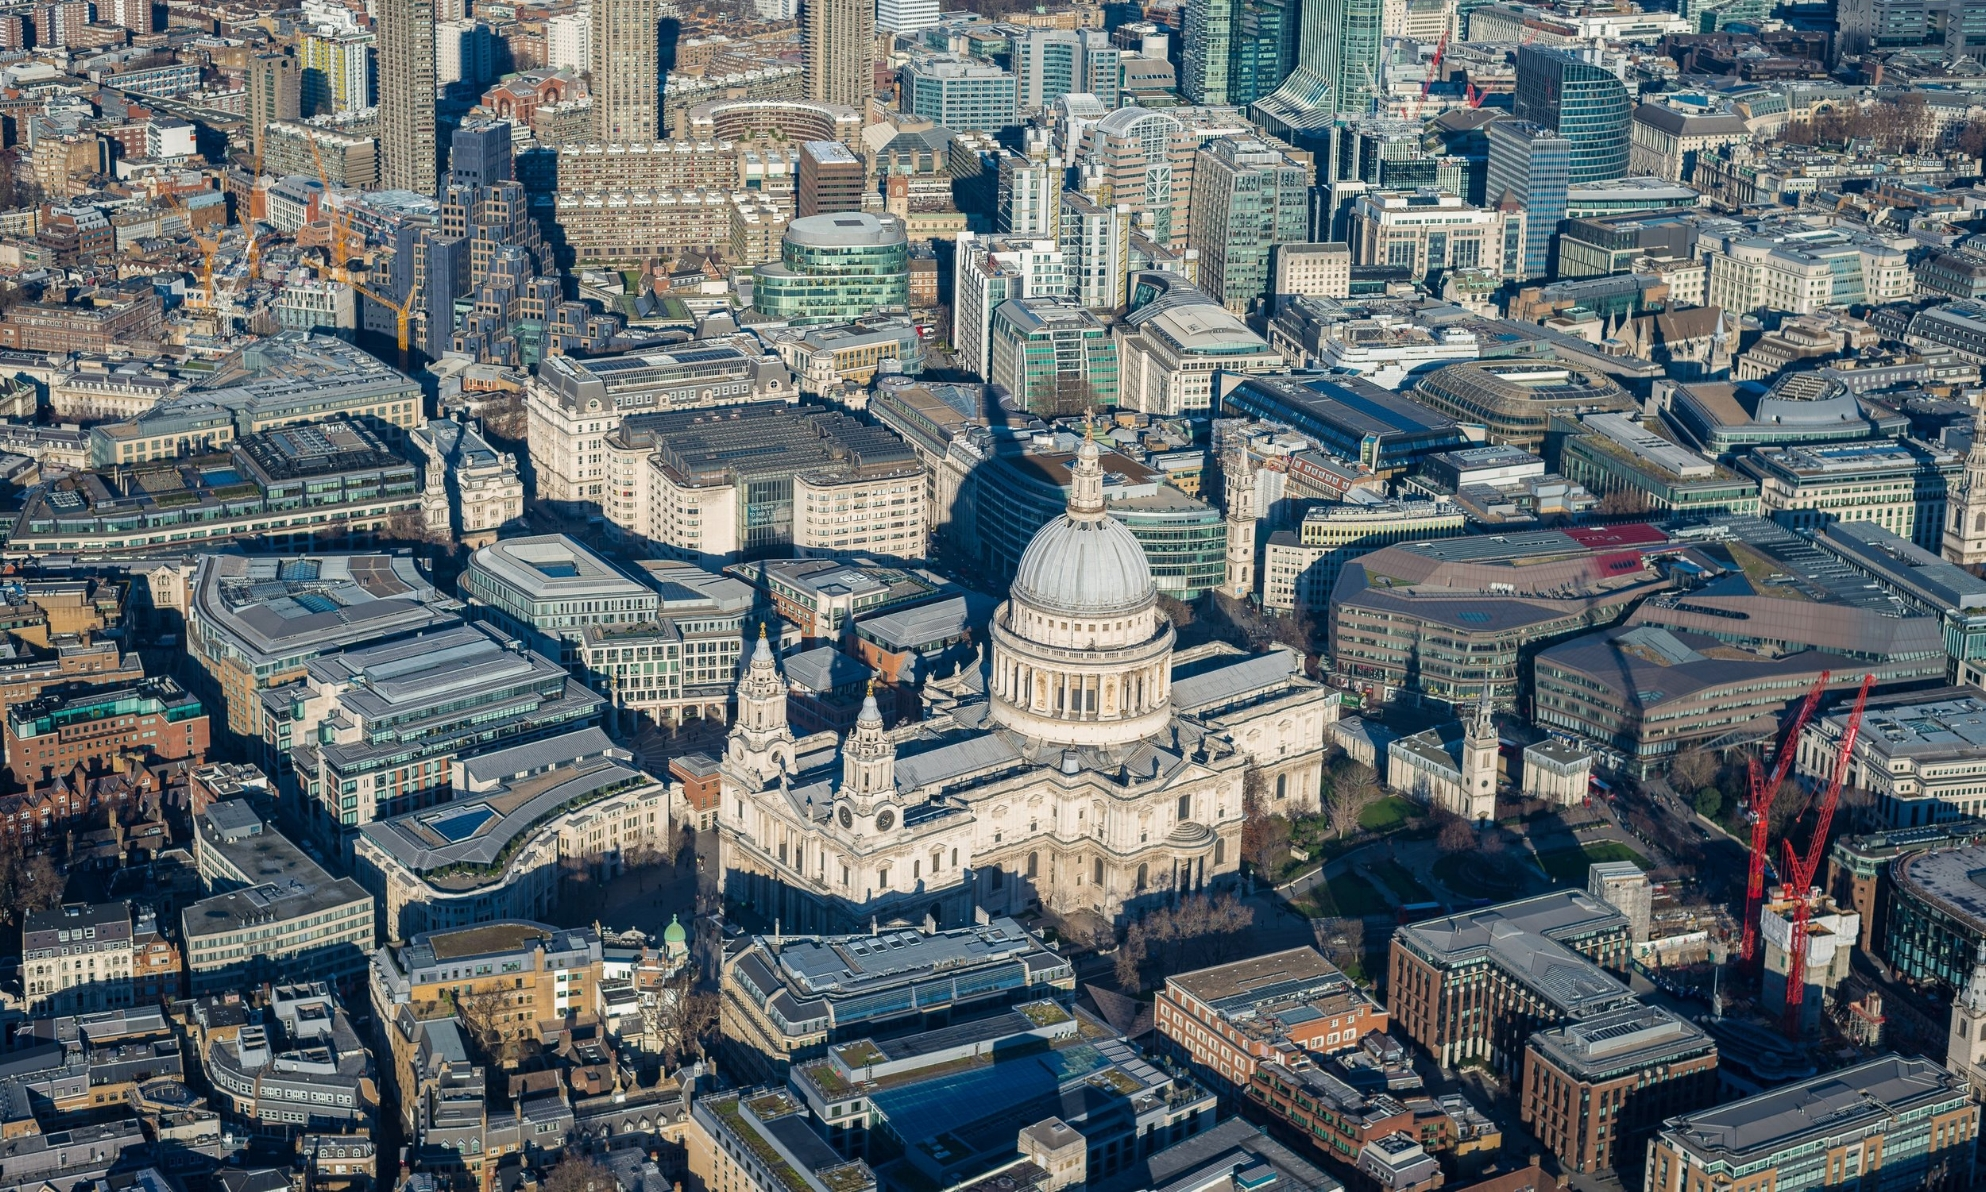 St Pauls Aerial View from Helicopter